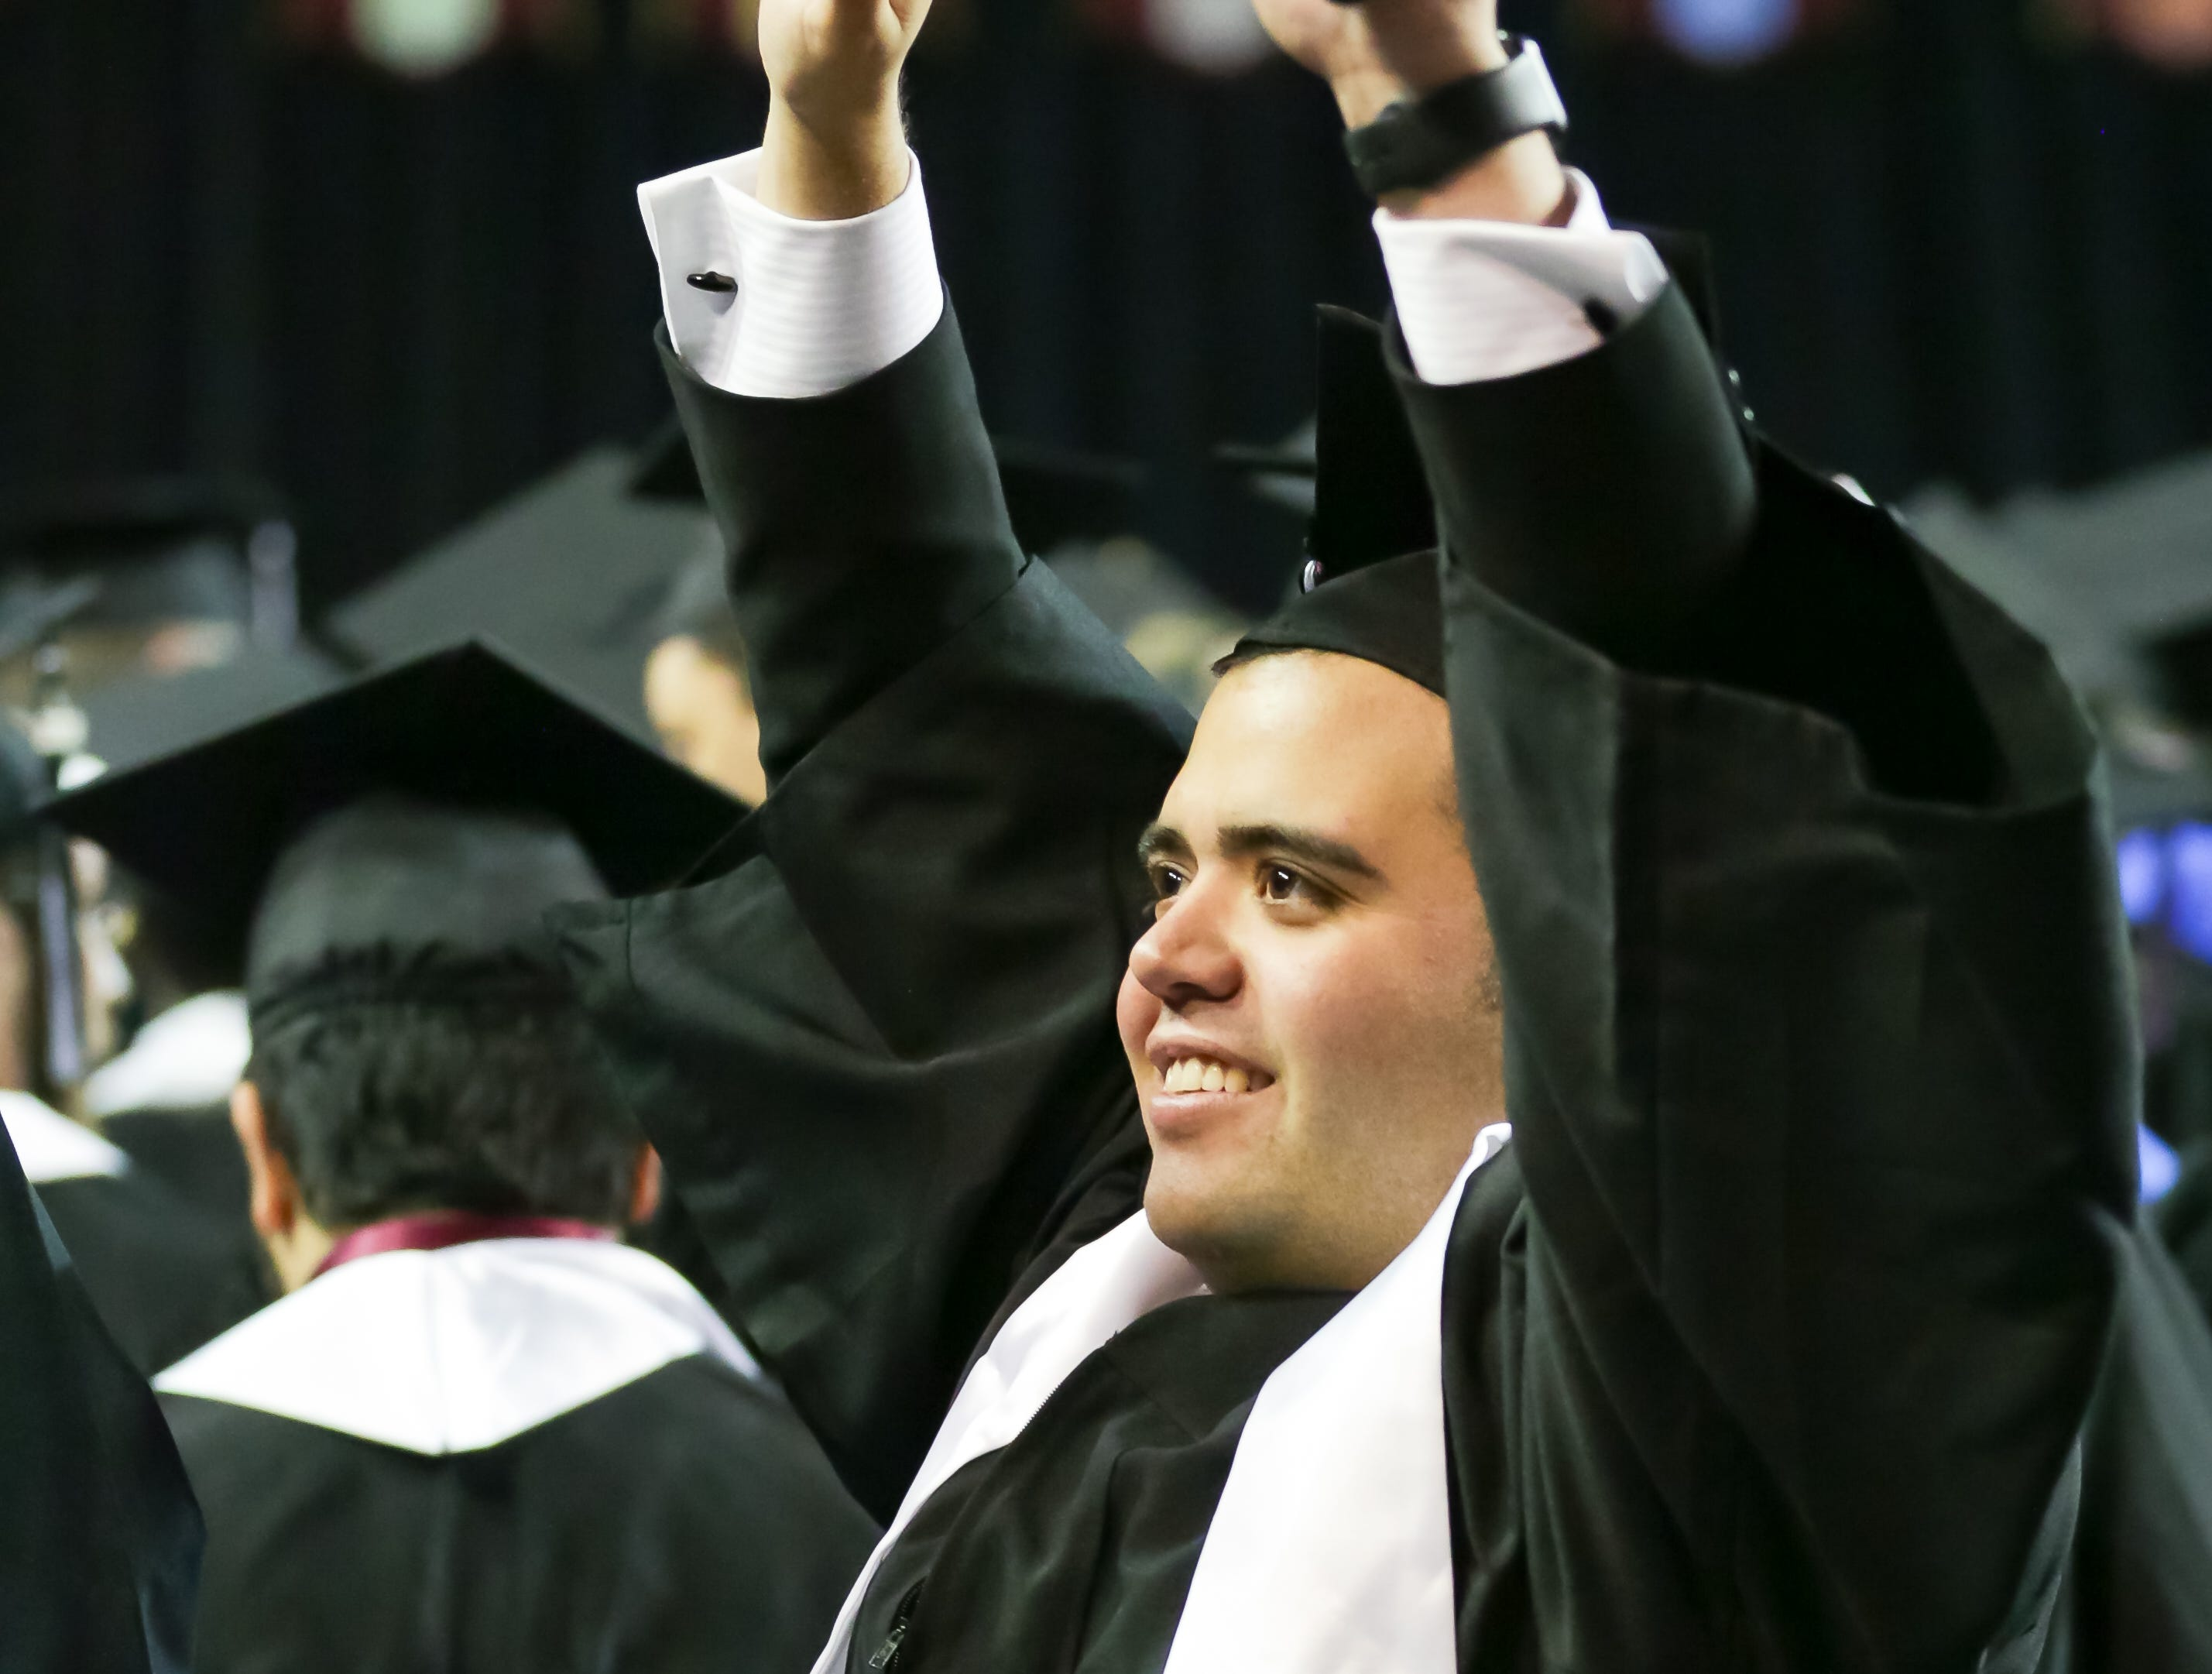 New Mexico State University's Eugenio Campos Leal waves at loved ones during the start of NMSU commencement ceremony on Saturday, Dec. 8, 2018 at the Pan American Center.